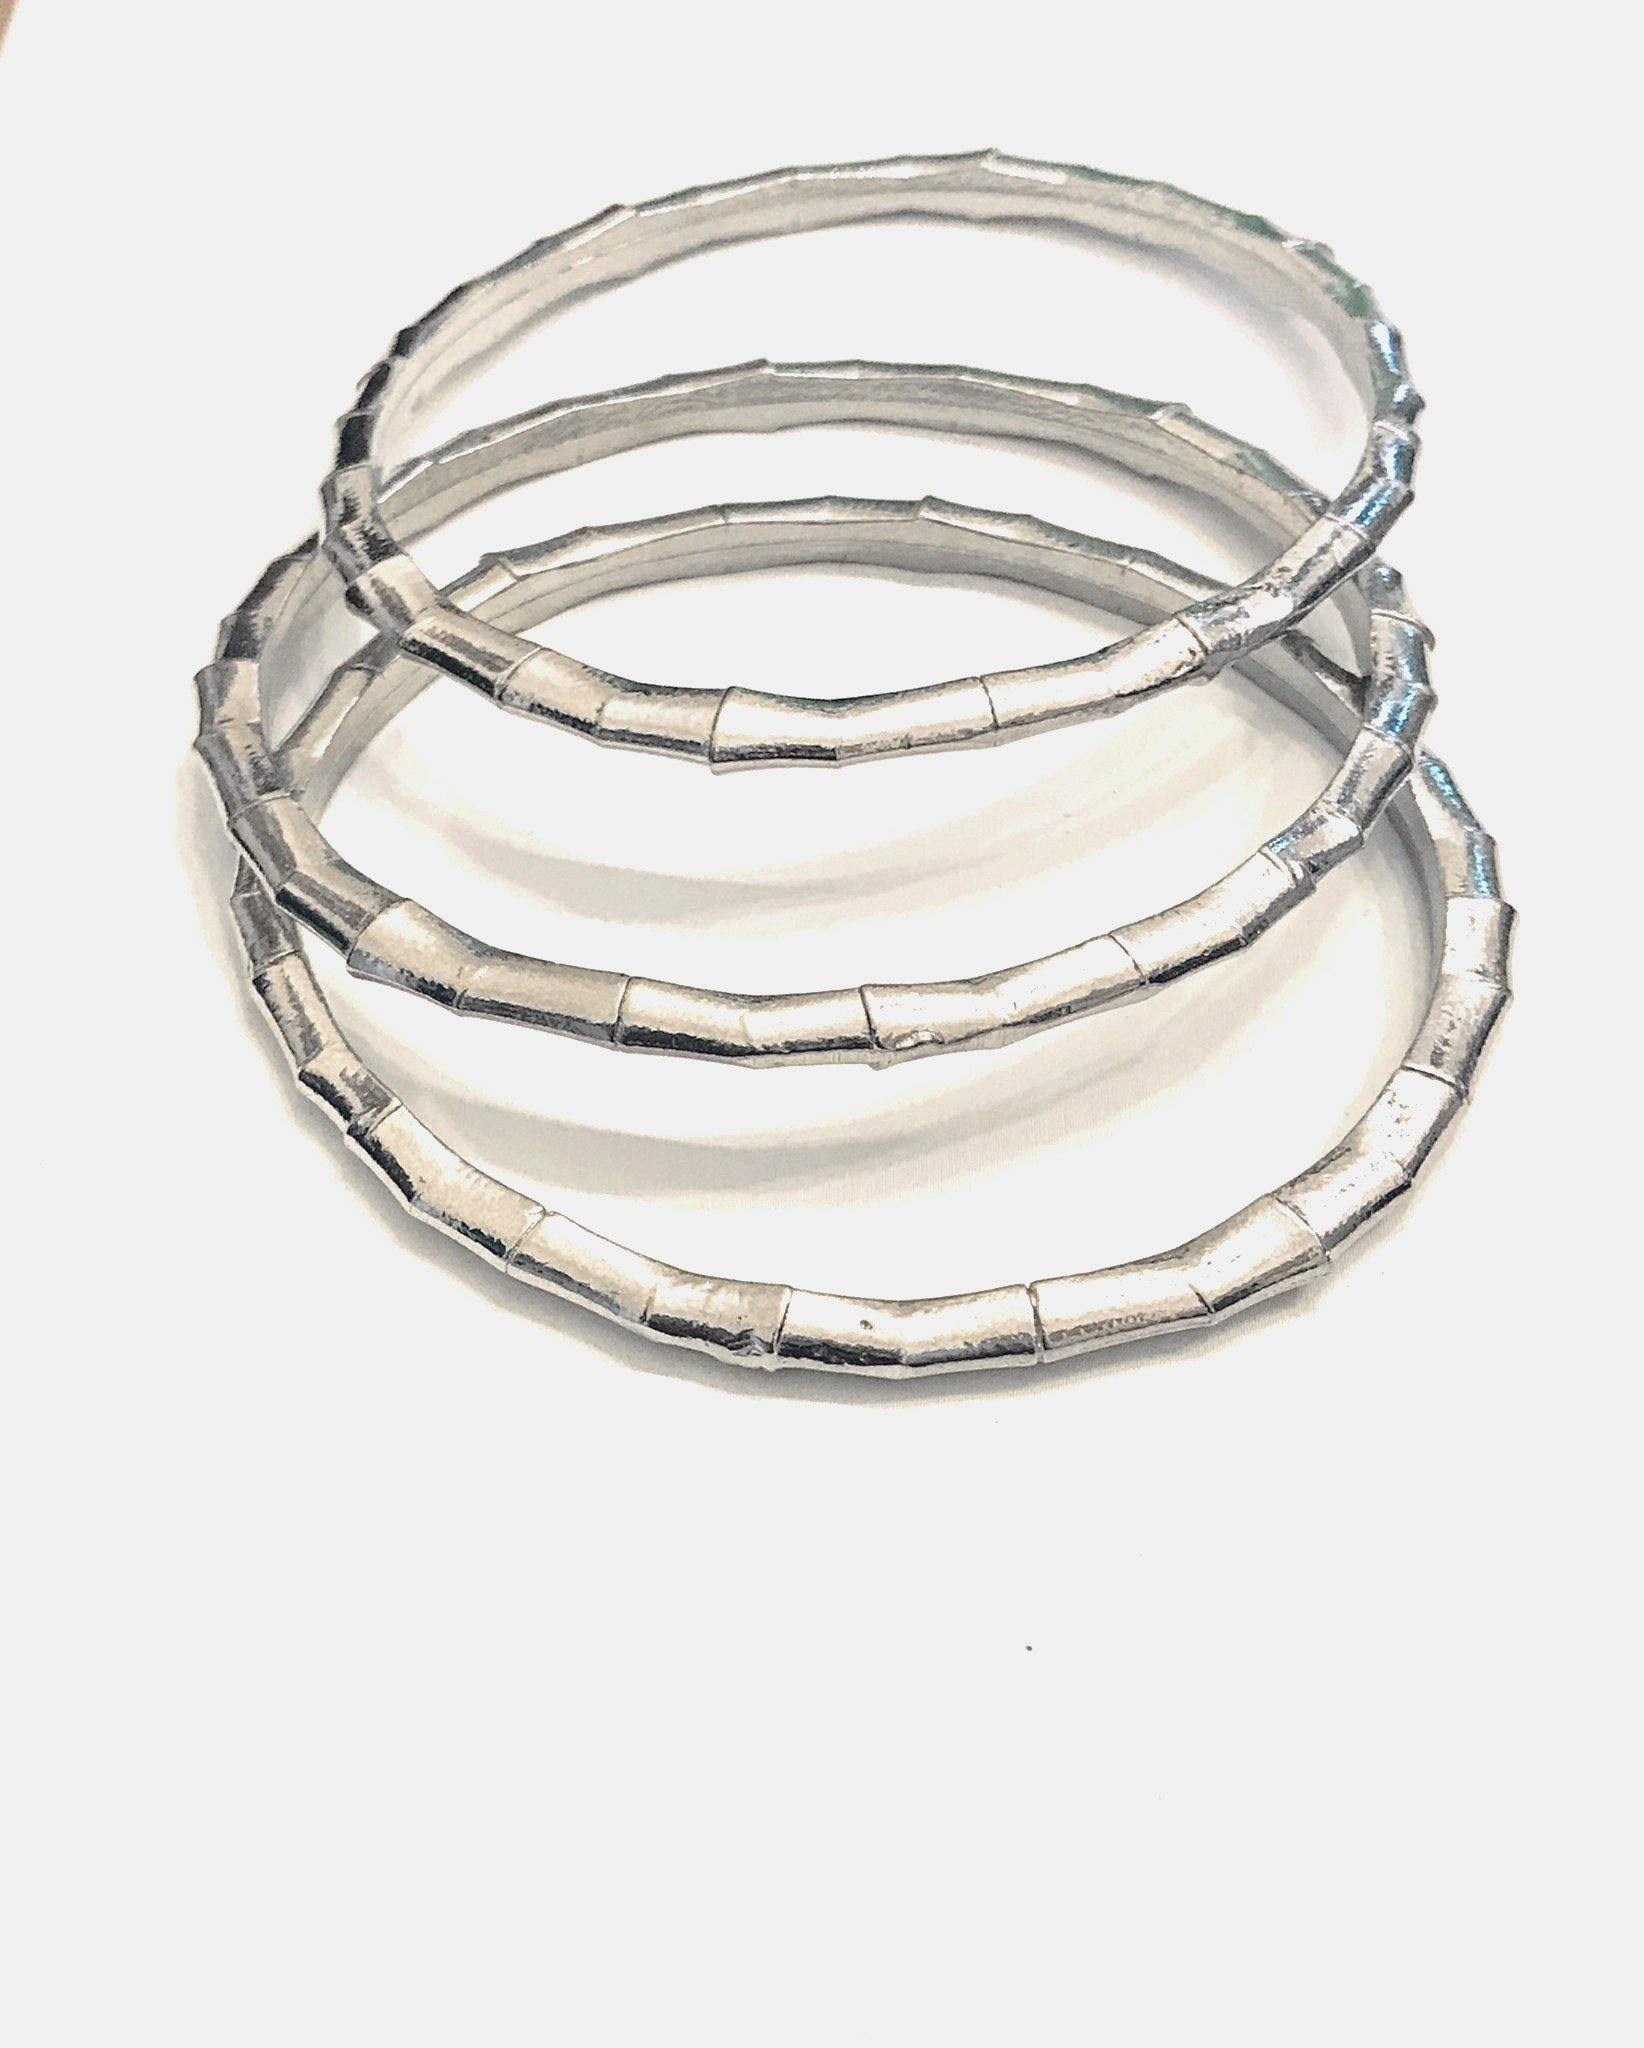 "Fine Pewter Bamboo Inspired Bracelet Bangle Jewelry 8"" Circumference - House of Morgan Pewter"